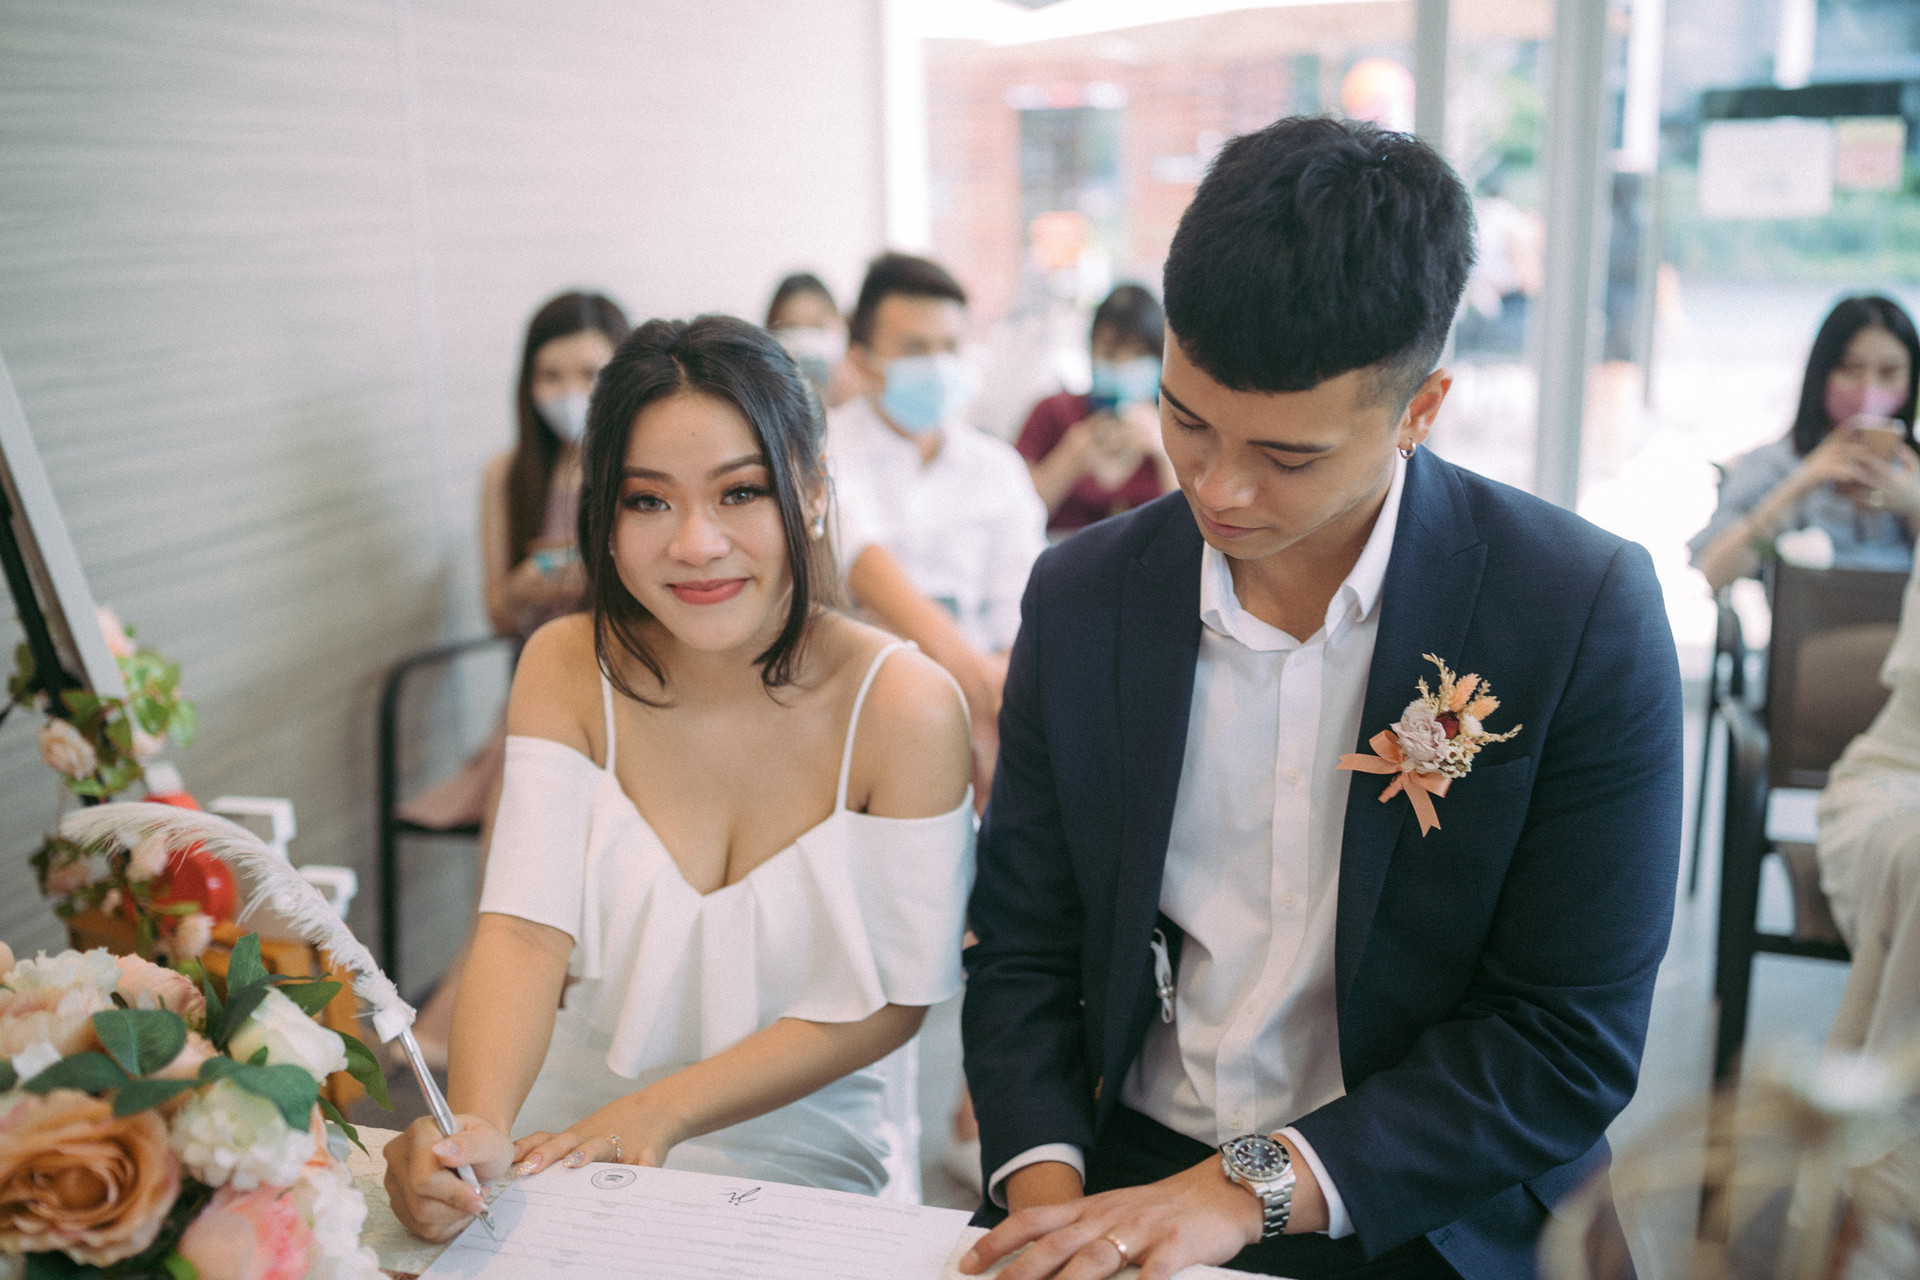 boonheng and jessica-227.jpg